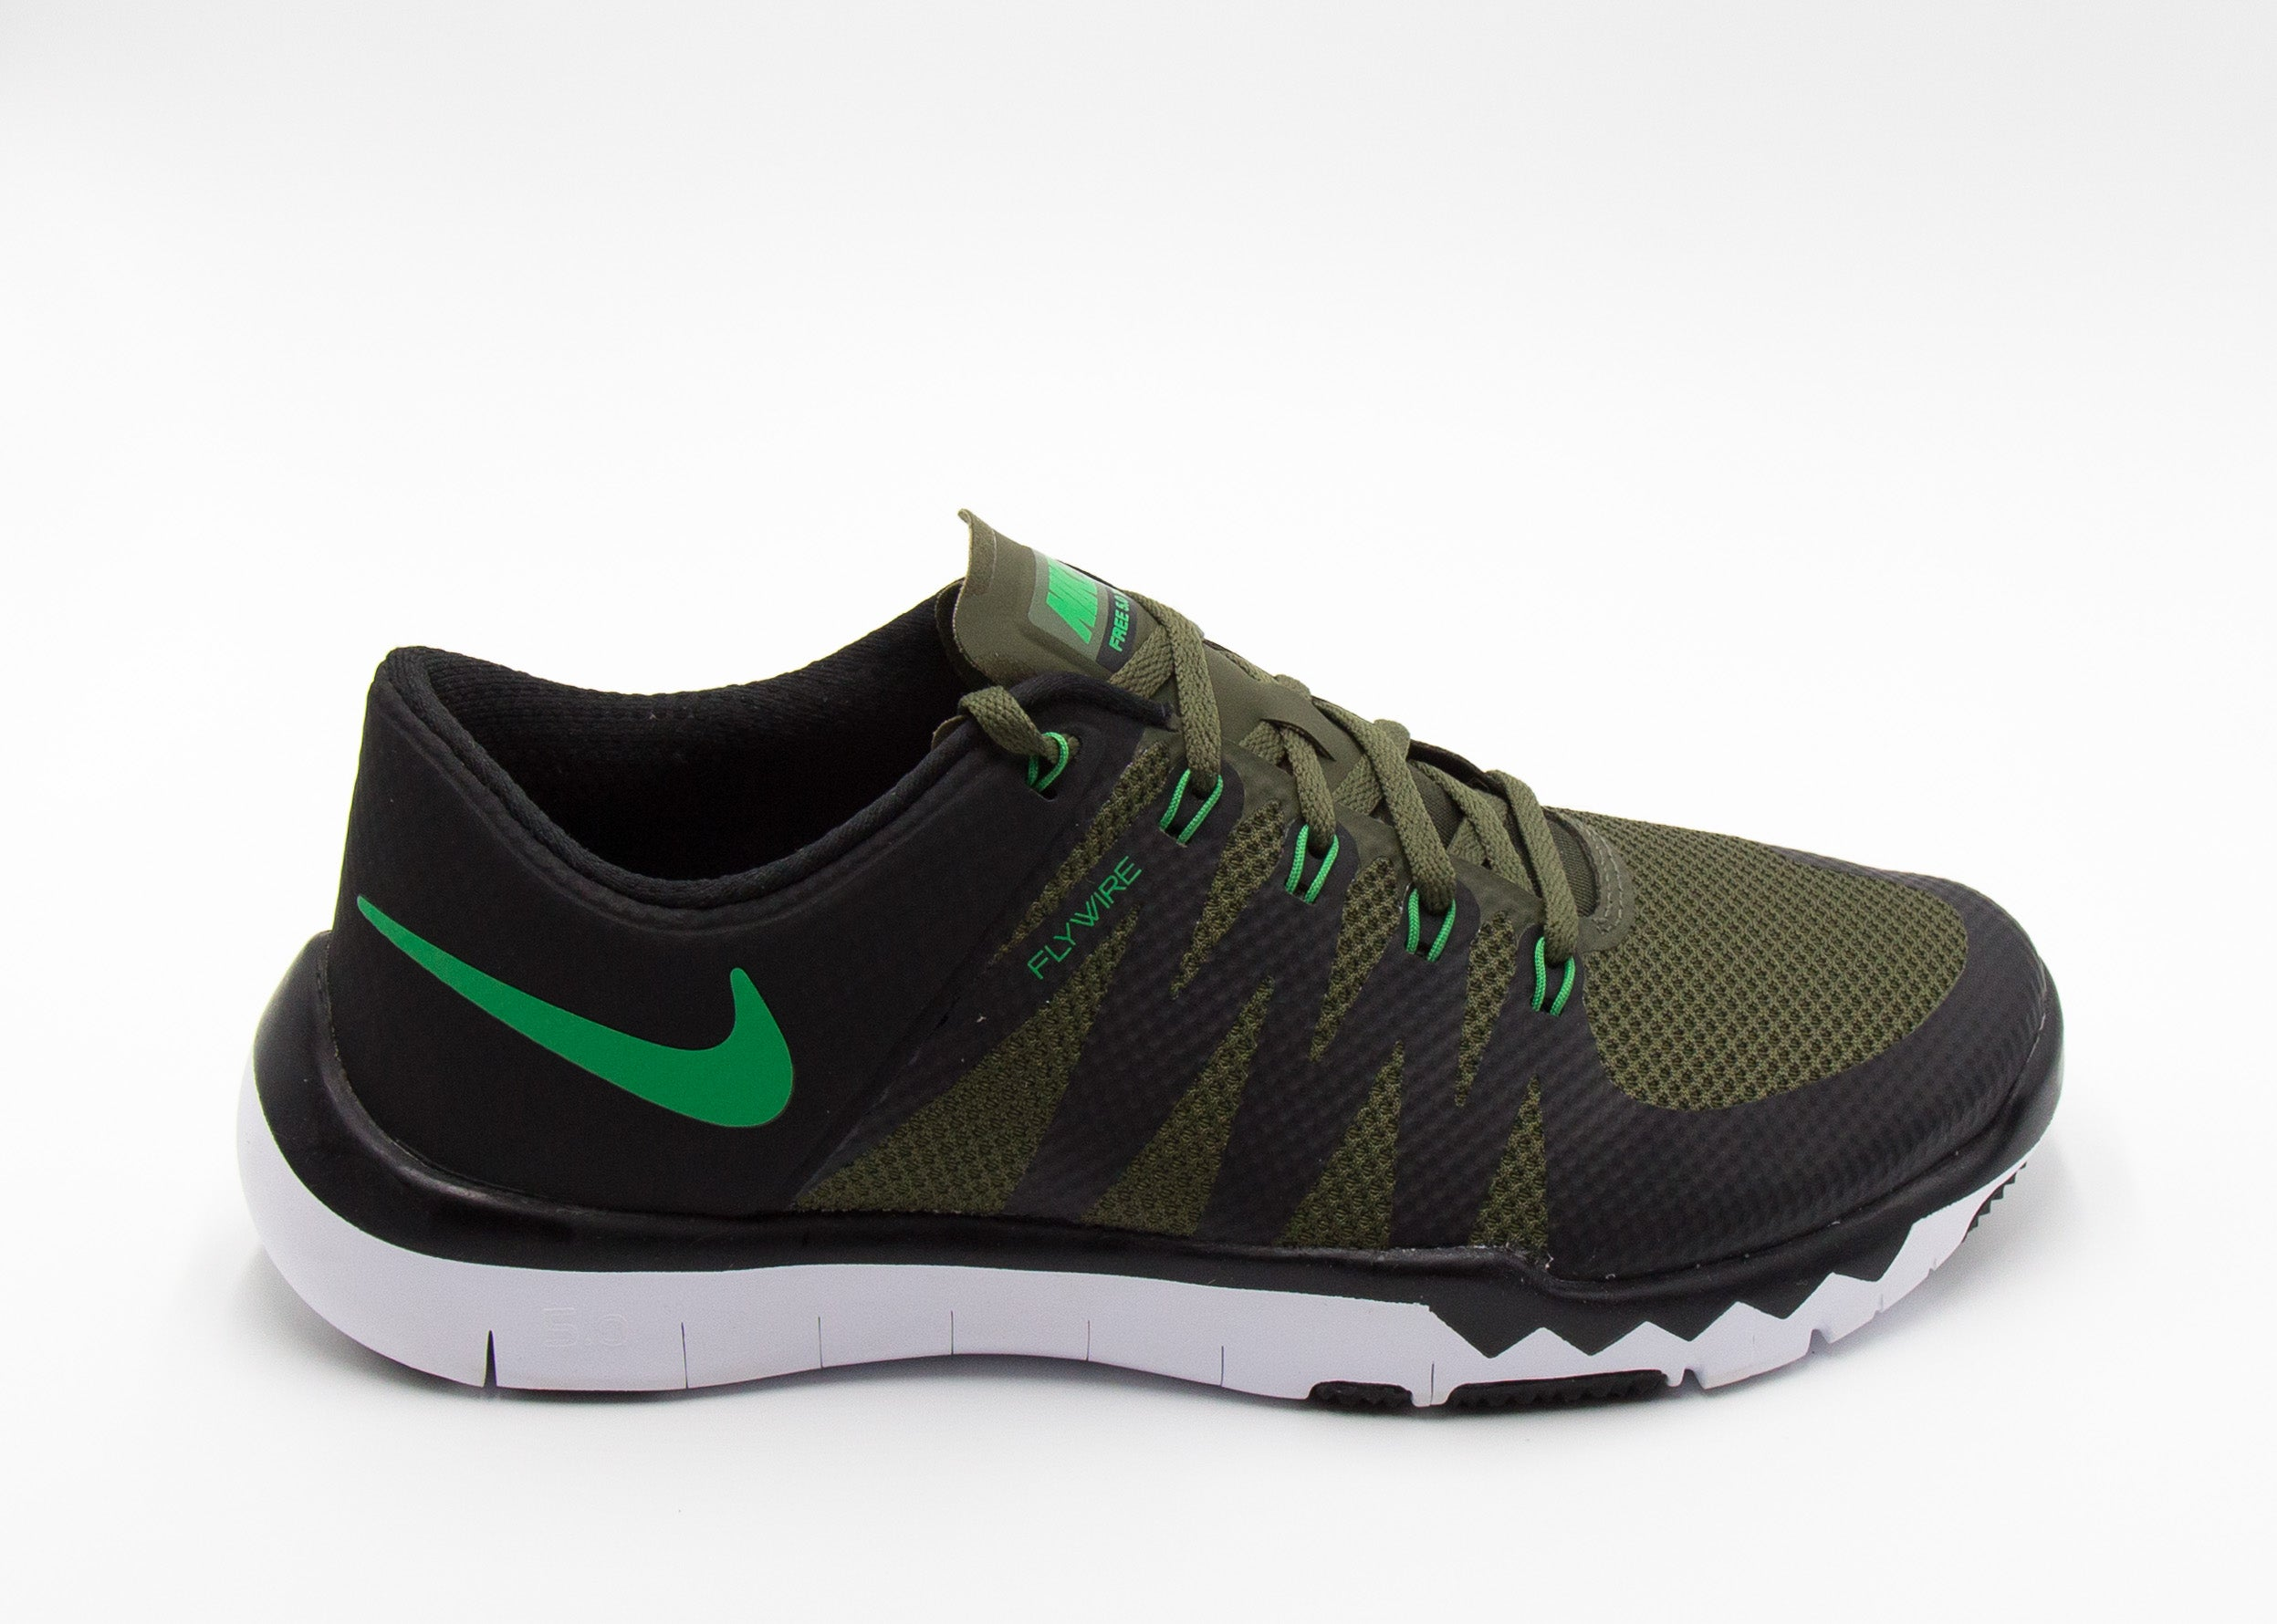 3b91d40c1d941 Nike Men s Free Trainer 5.0 V6 Shoe – SHOPFORLESS.PH